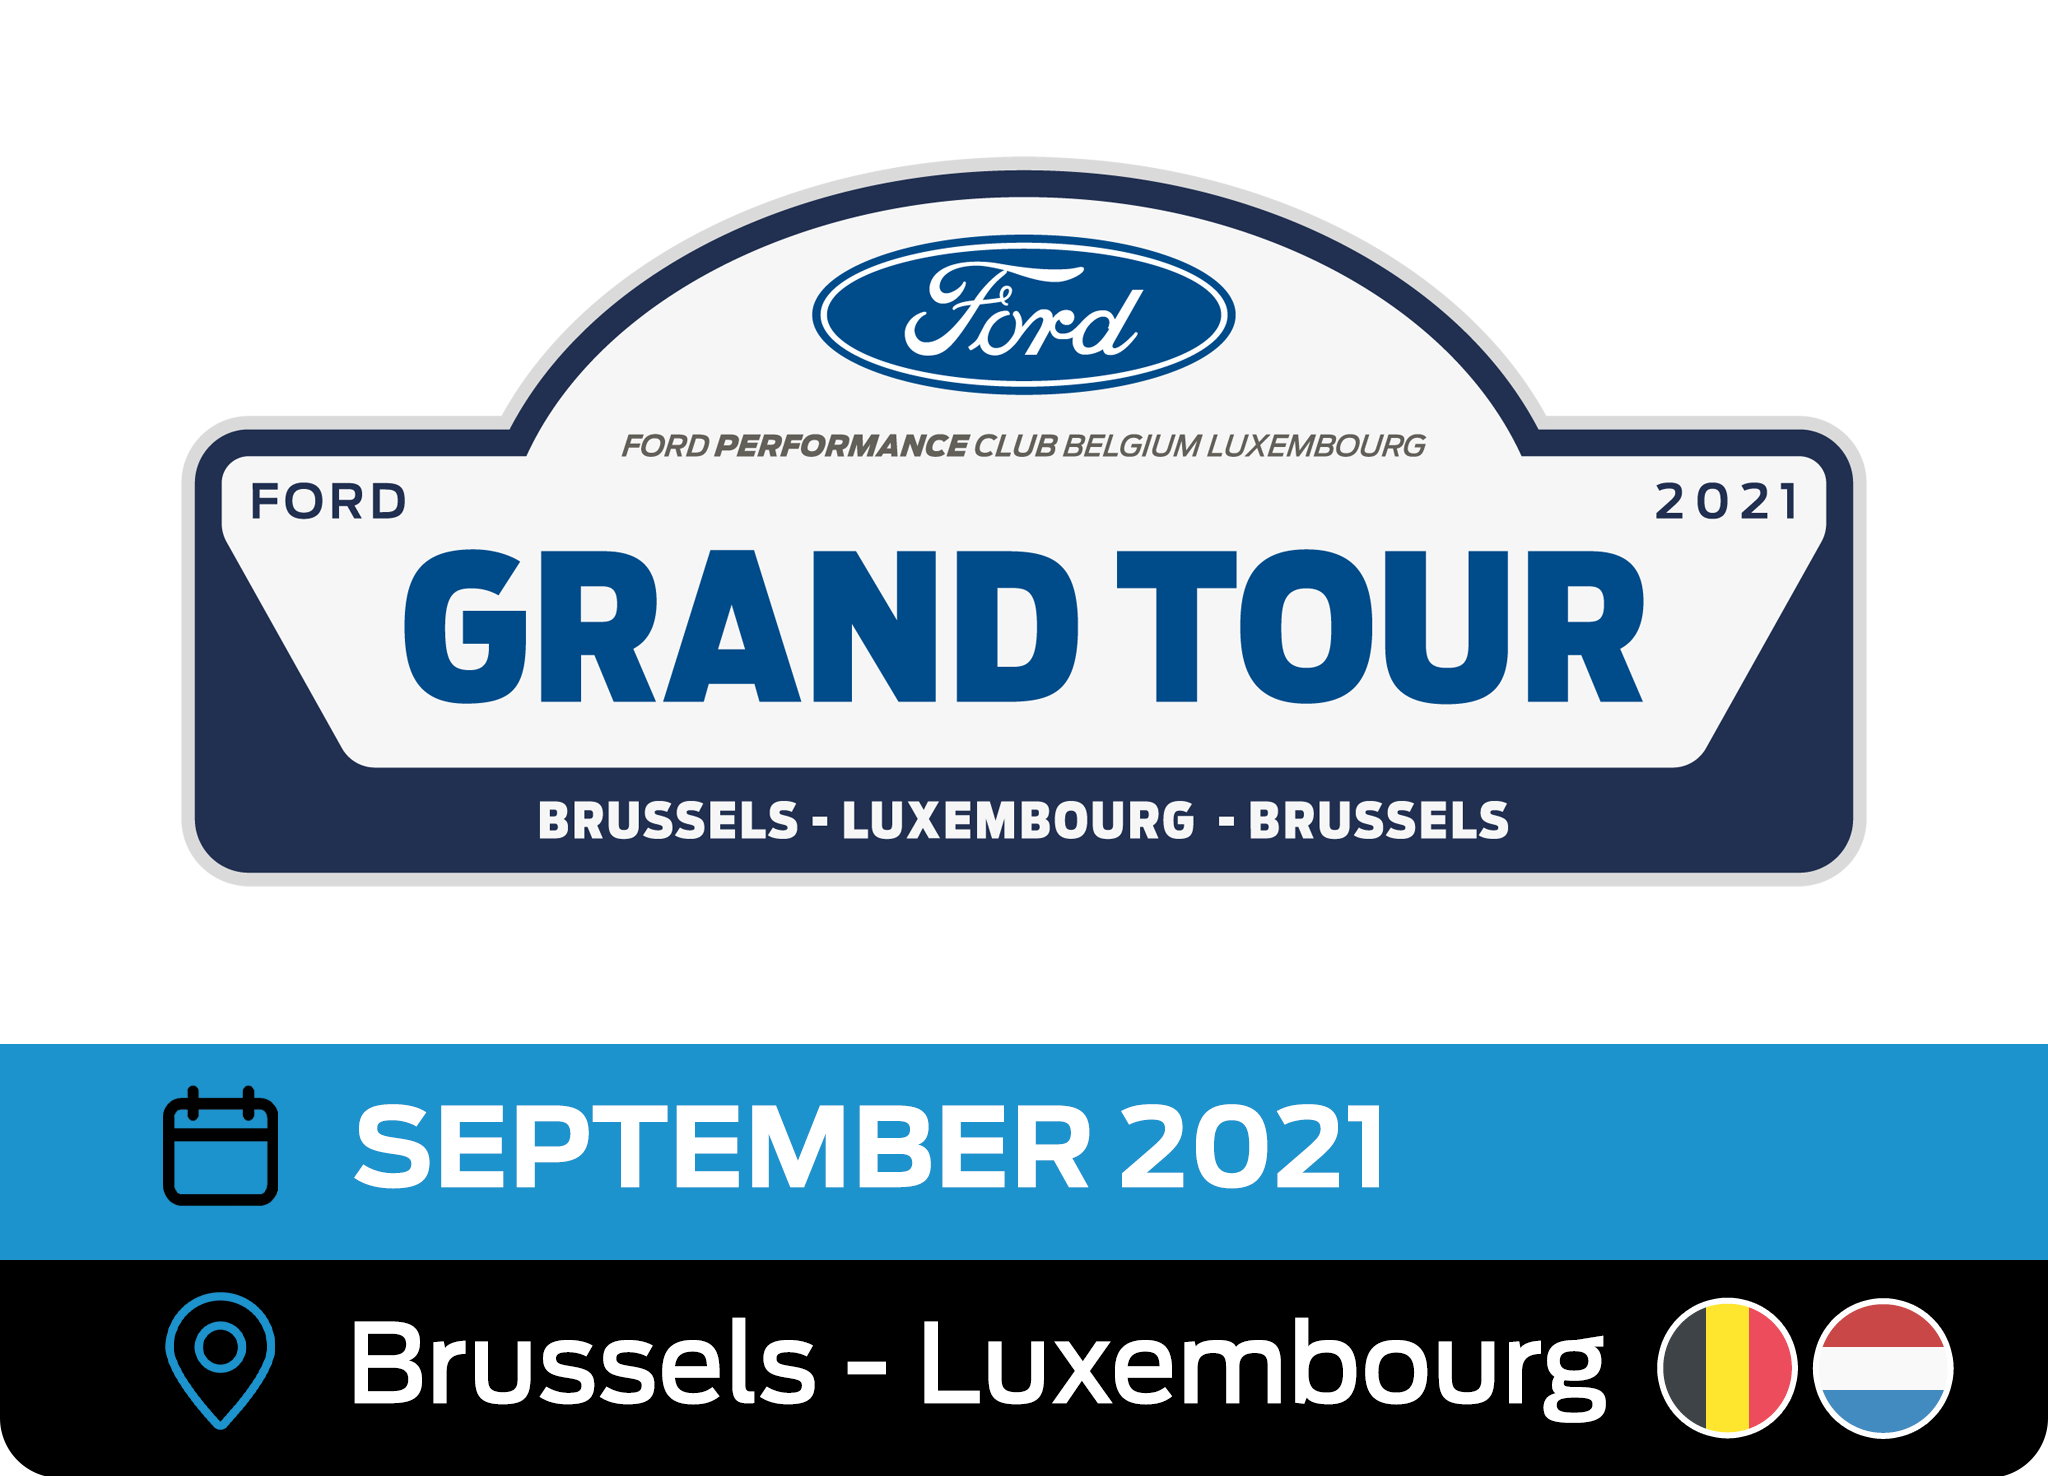 Ford Performance Grand Tour 2021